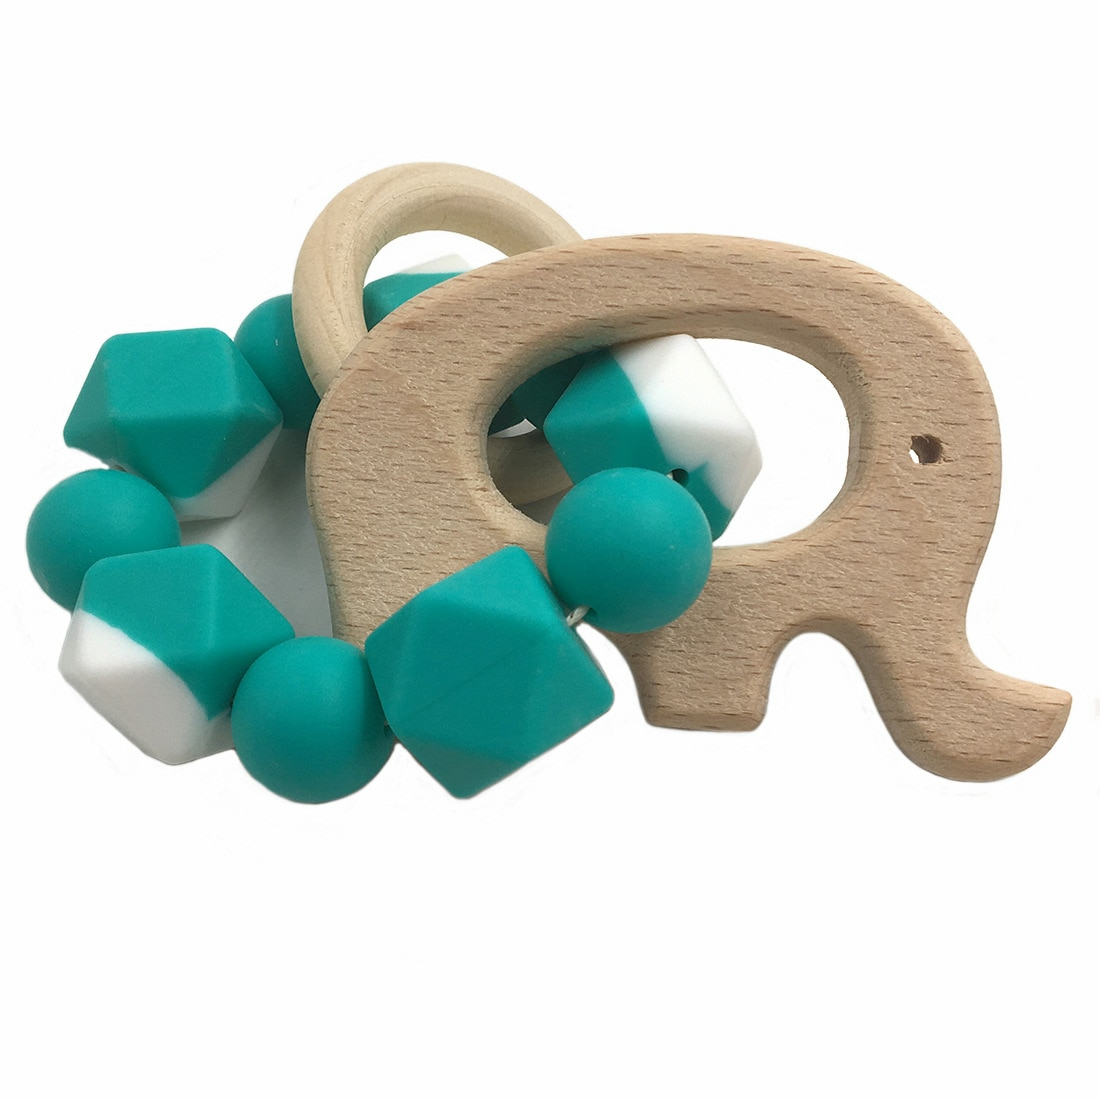 Beech Animal Care Bracelet Teeth Wooden Food Grade Silicone Beads Rattle Toy Personality Bracelet